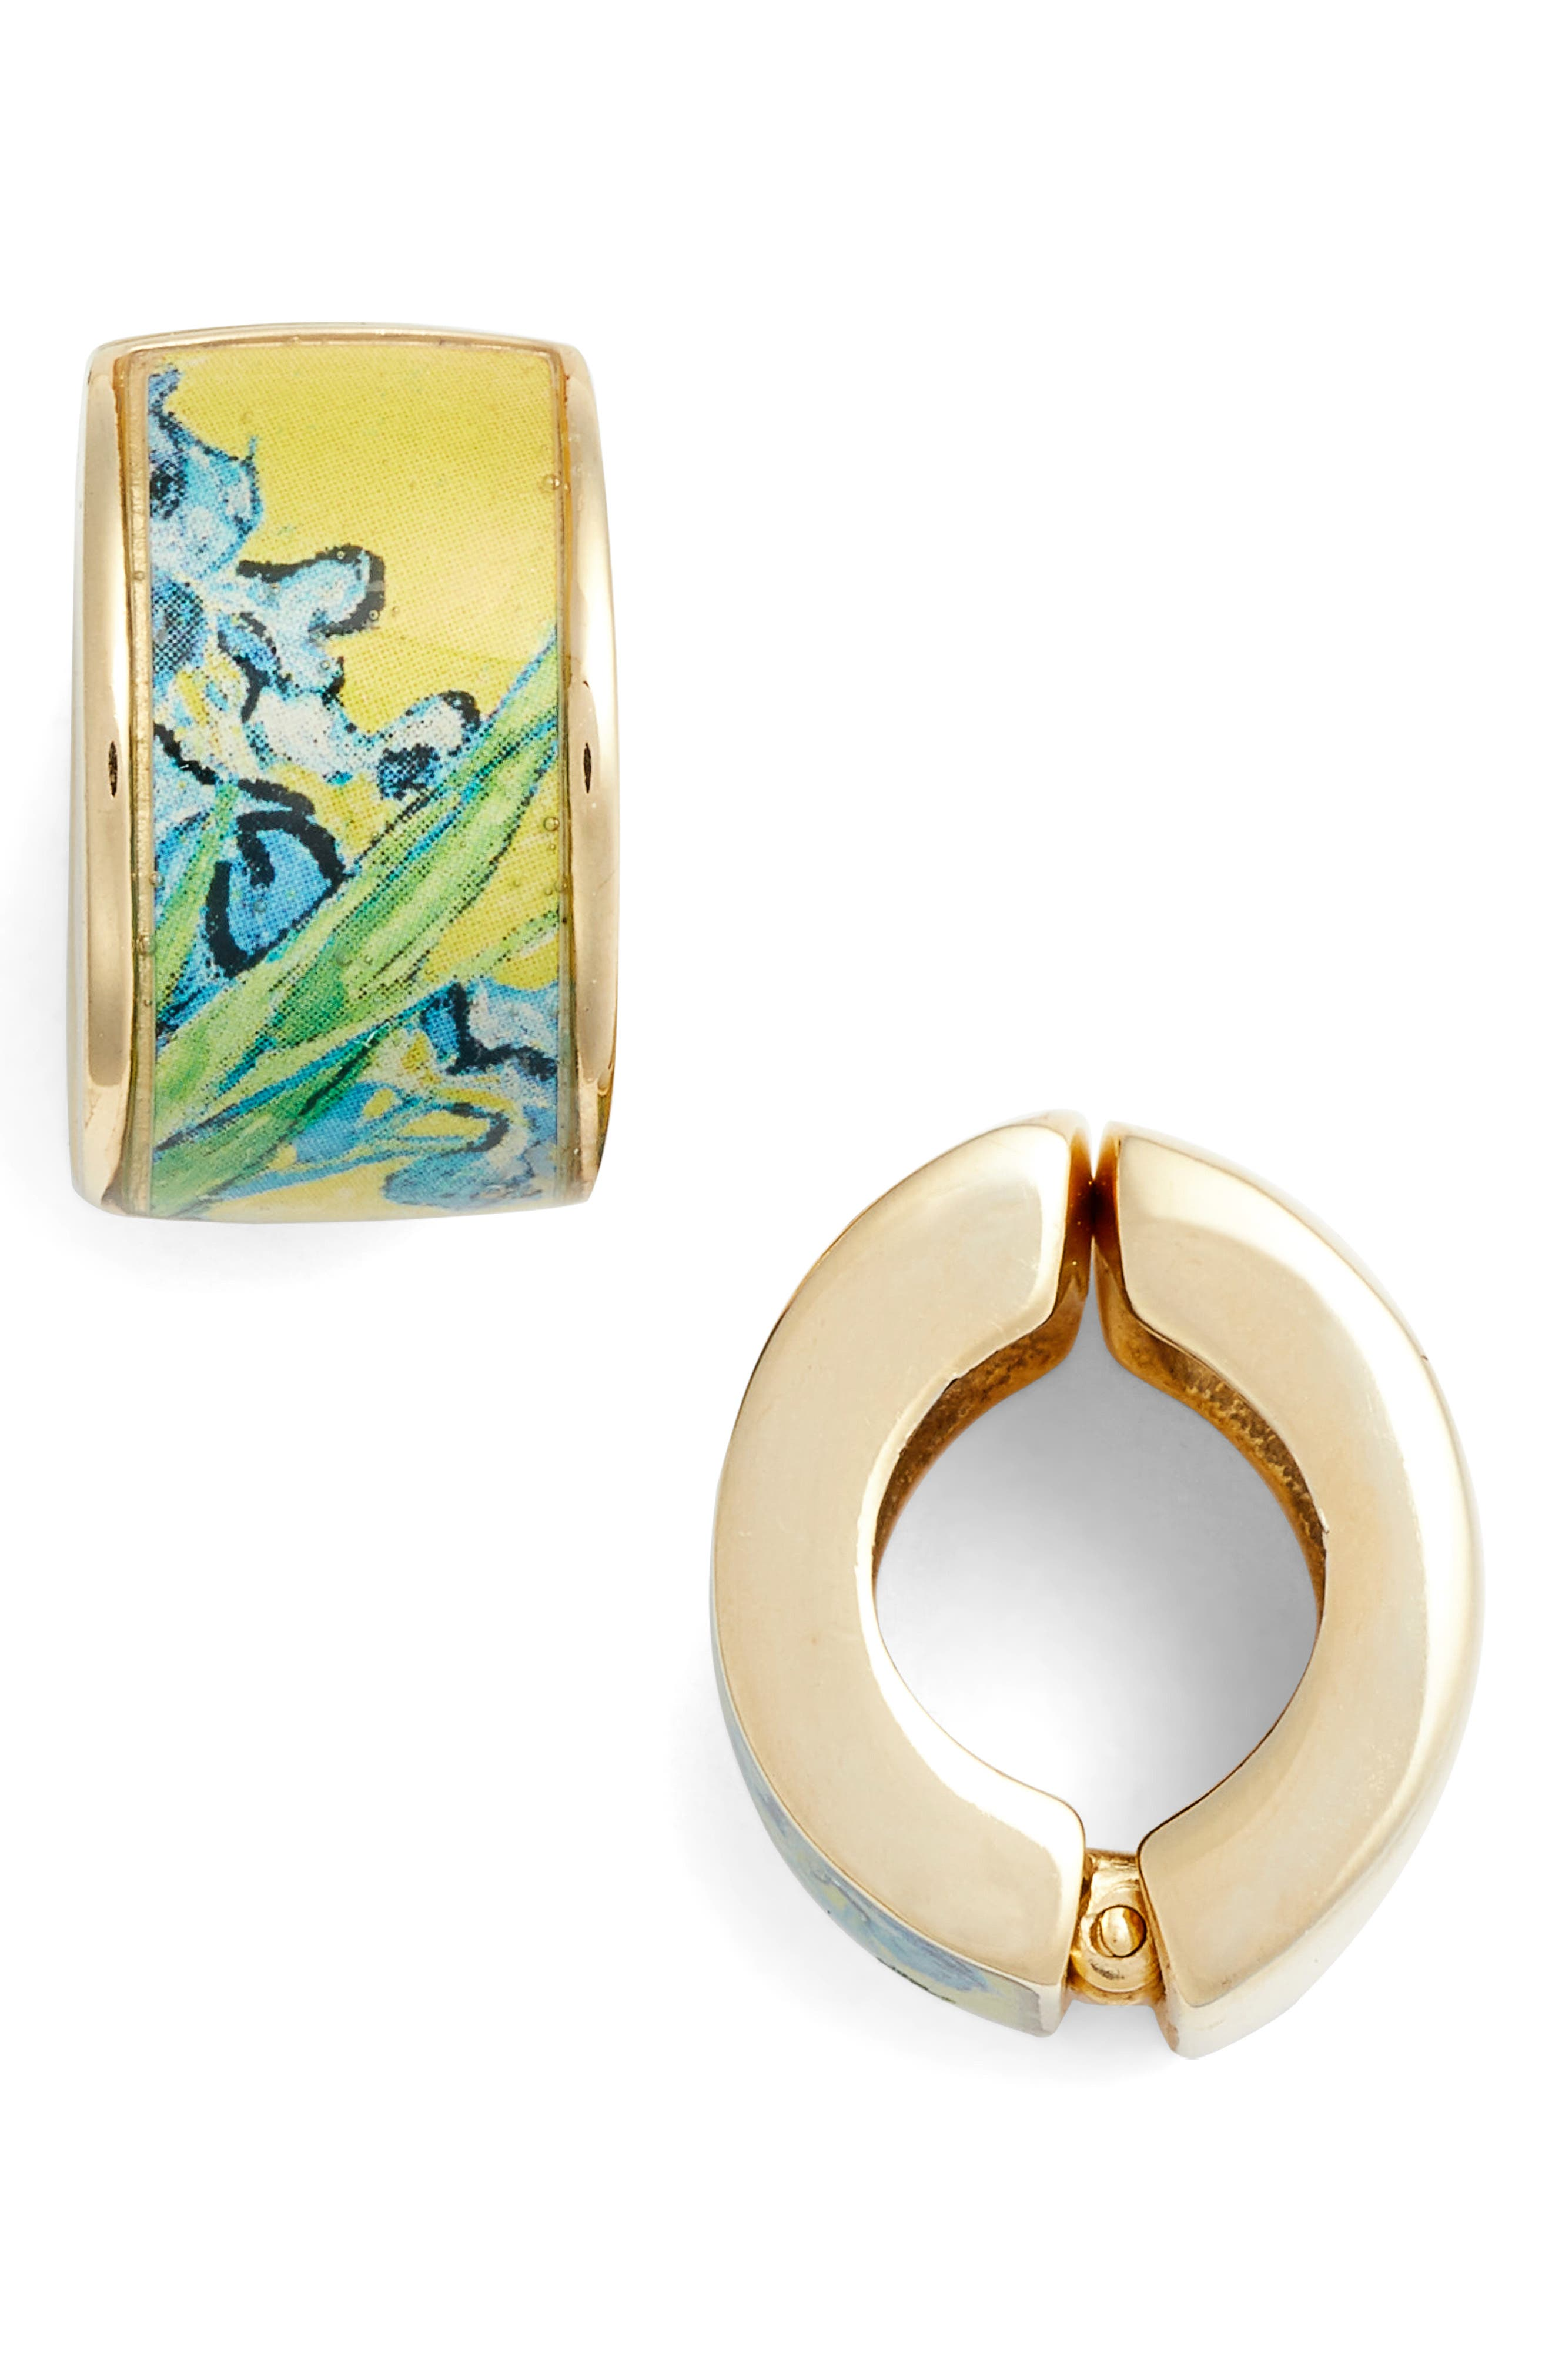 ERWIN PEARL,                             Goldtone Irises Clip-on Earrings,                             Main thumbnail 1, color,                             YELLOW/ GOLD